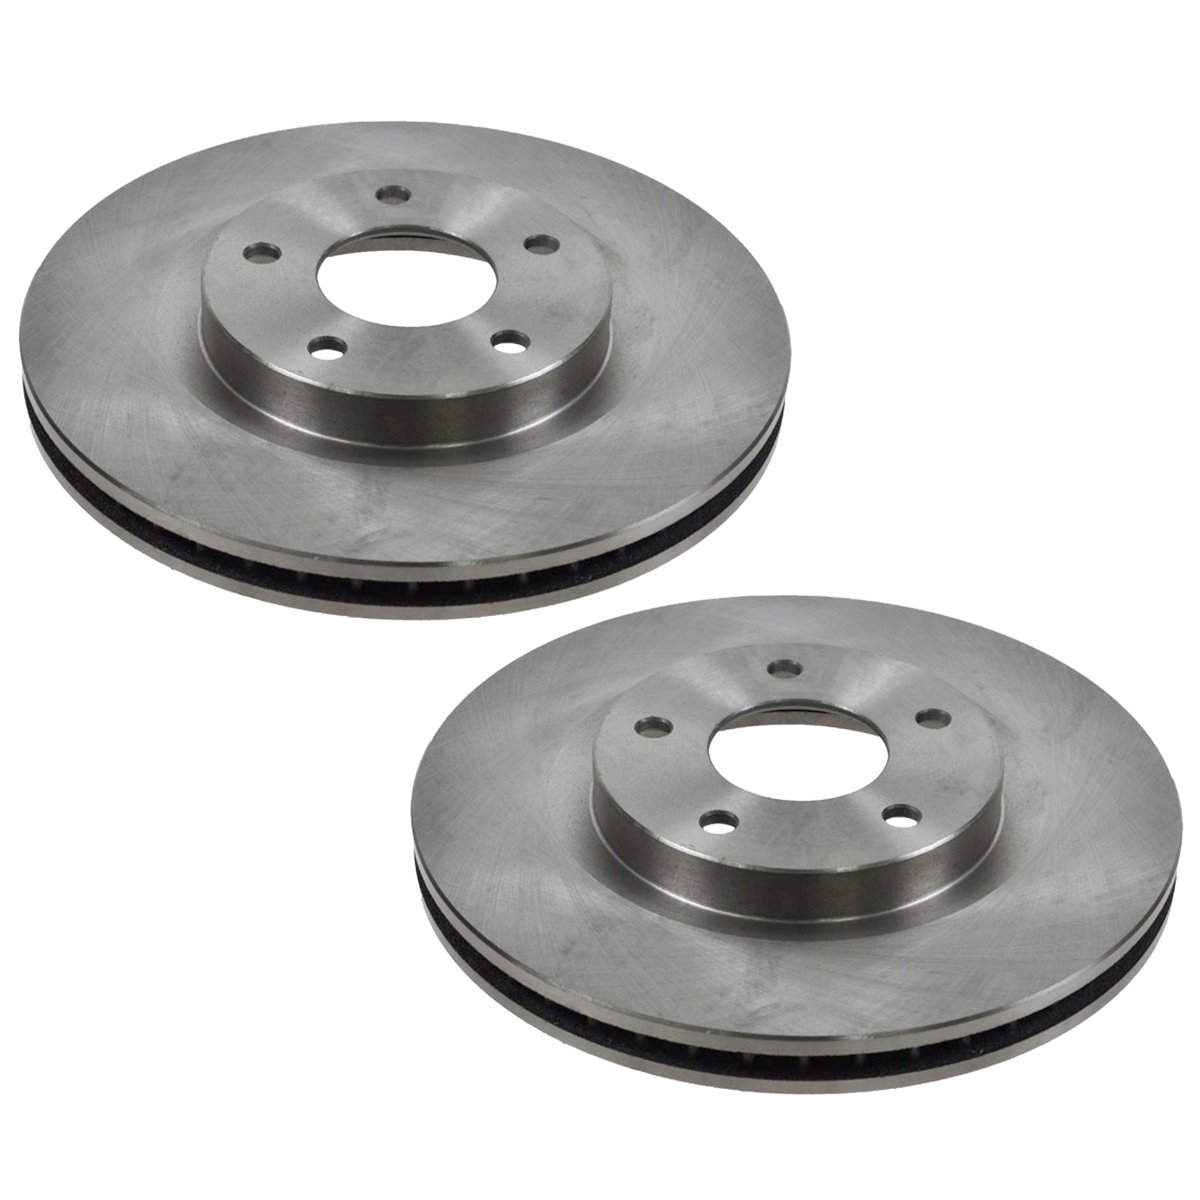 2007 Fits Nissan Sentra SE-R Spec V OE Replacement Rotors Ceramic Pads F+R